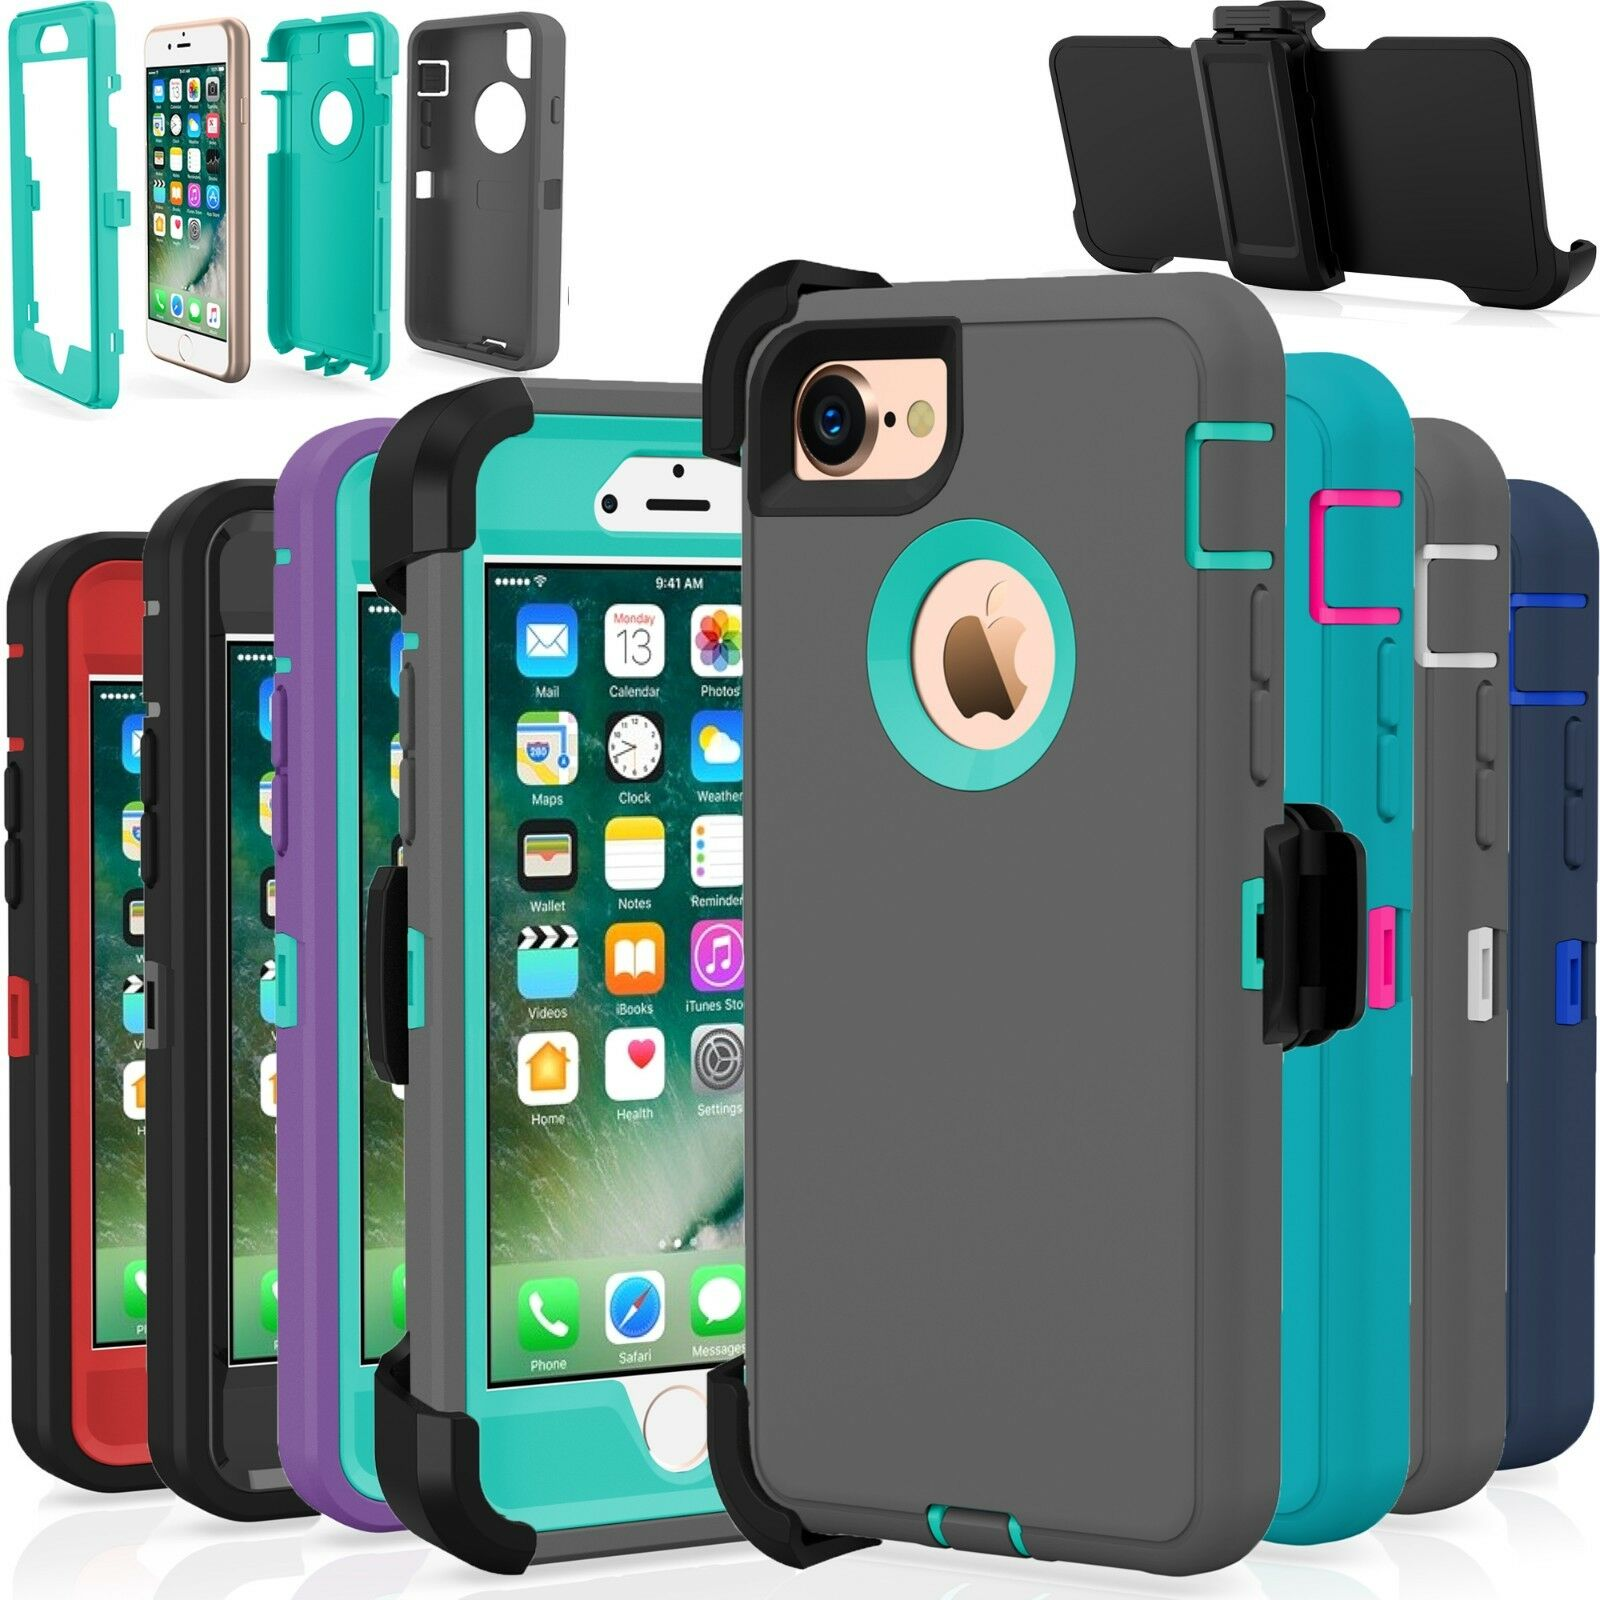 Shockproof Hard Case Cover For Apple iPhone 7 / 8 / Plus